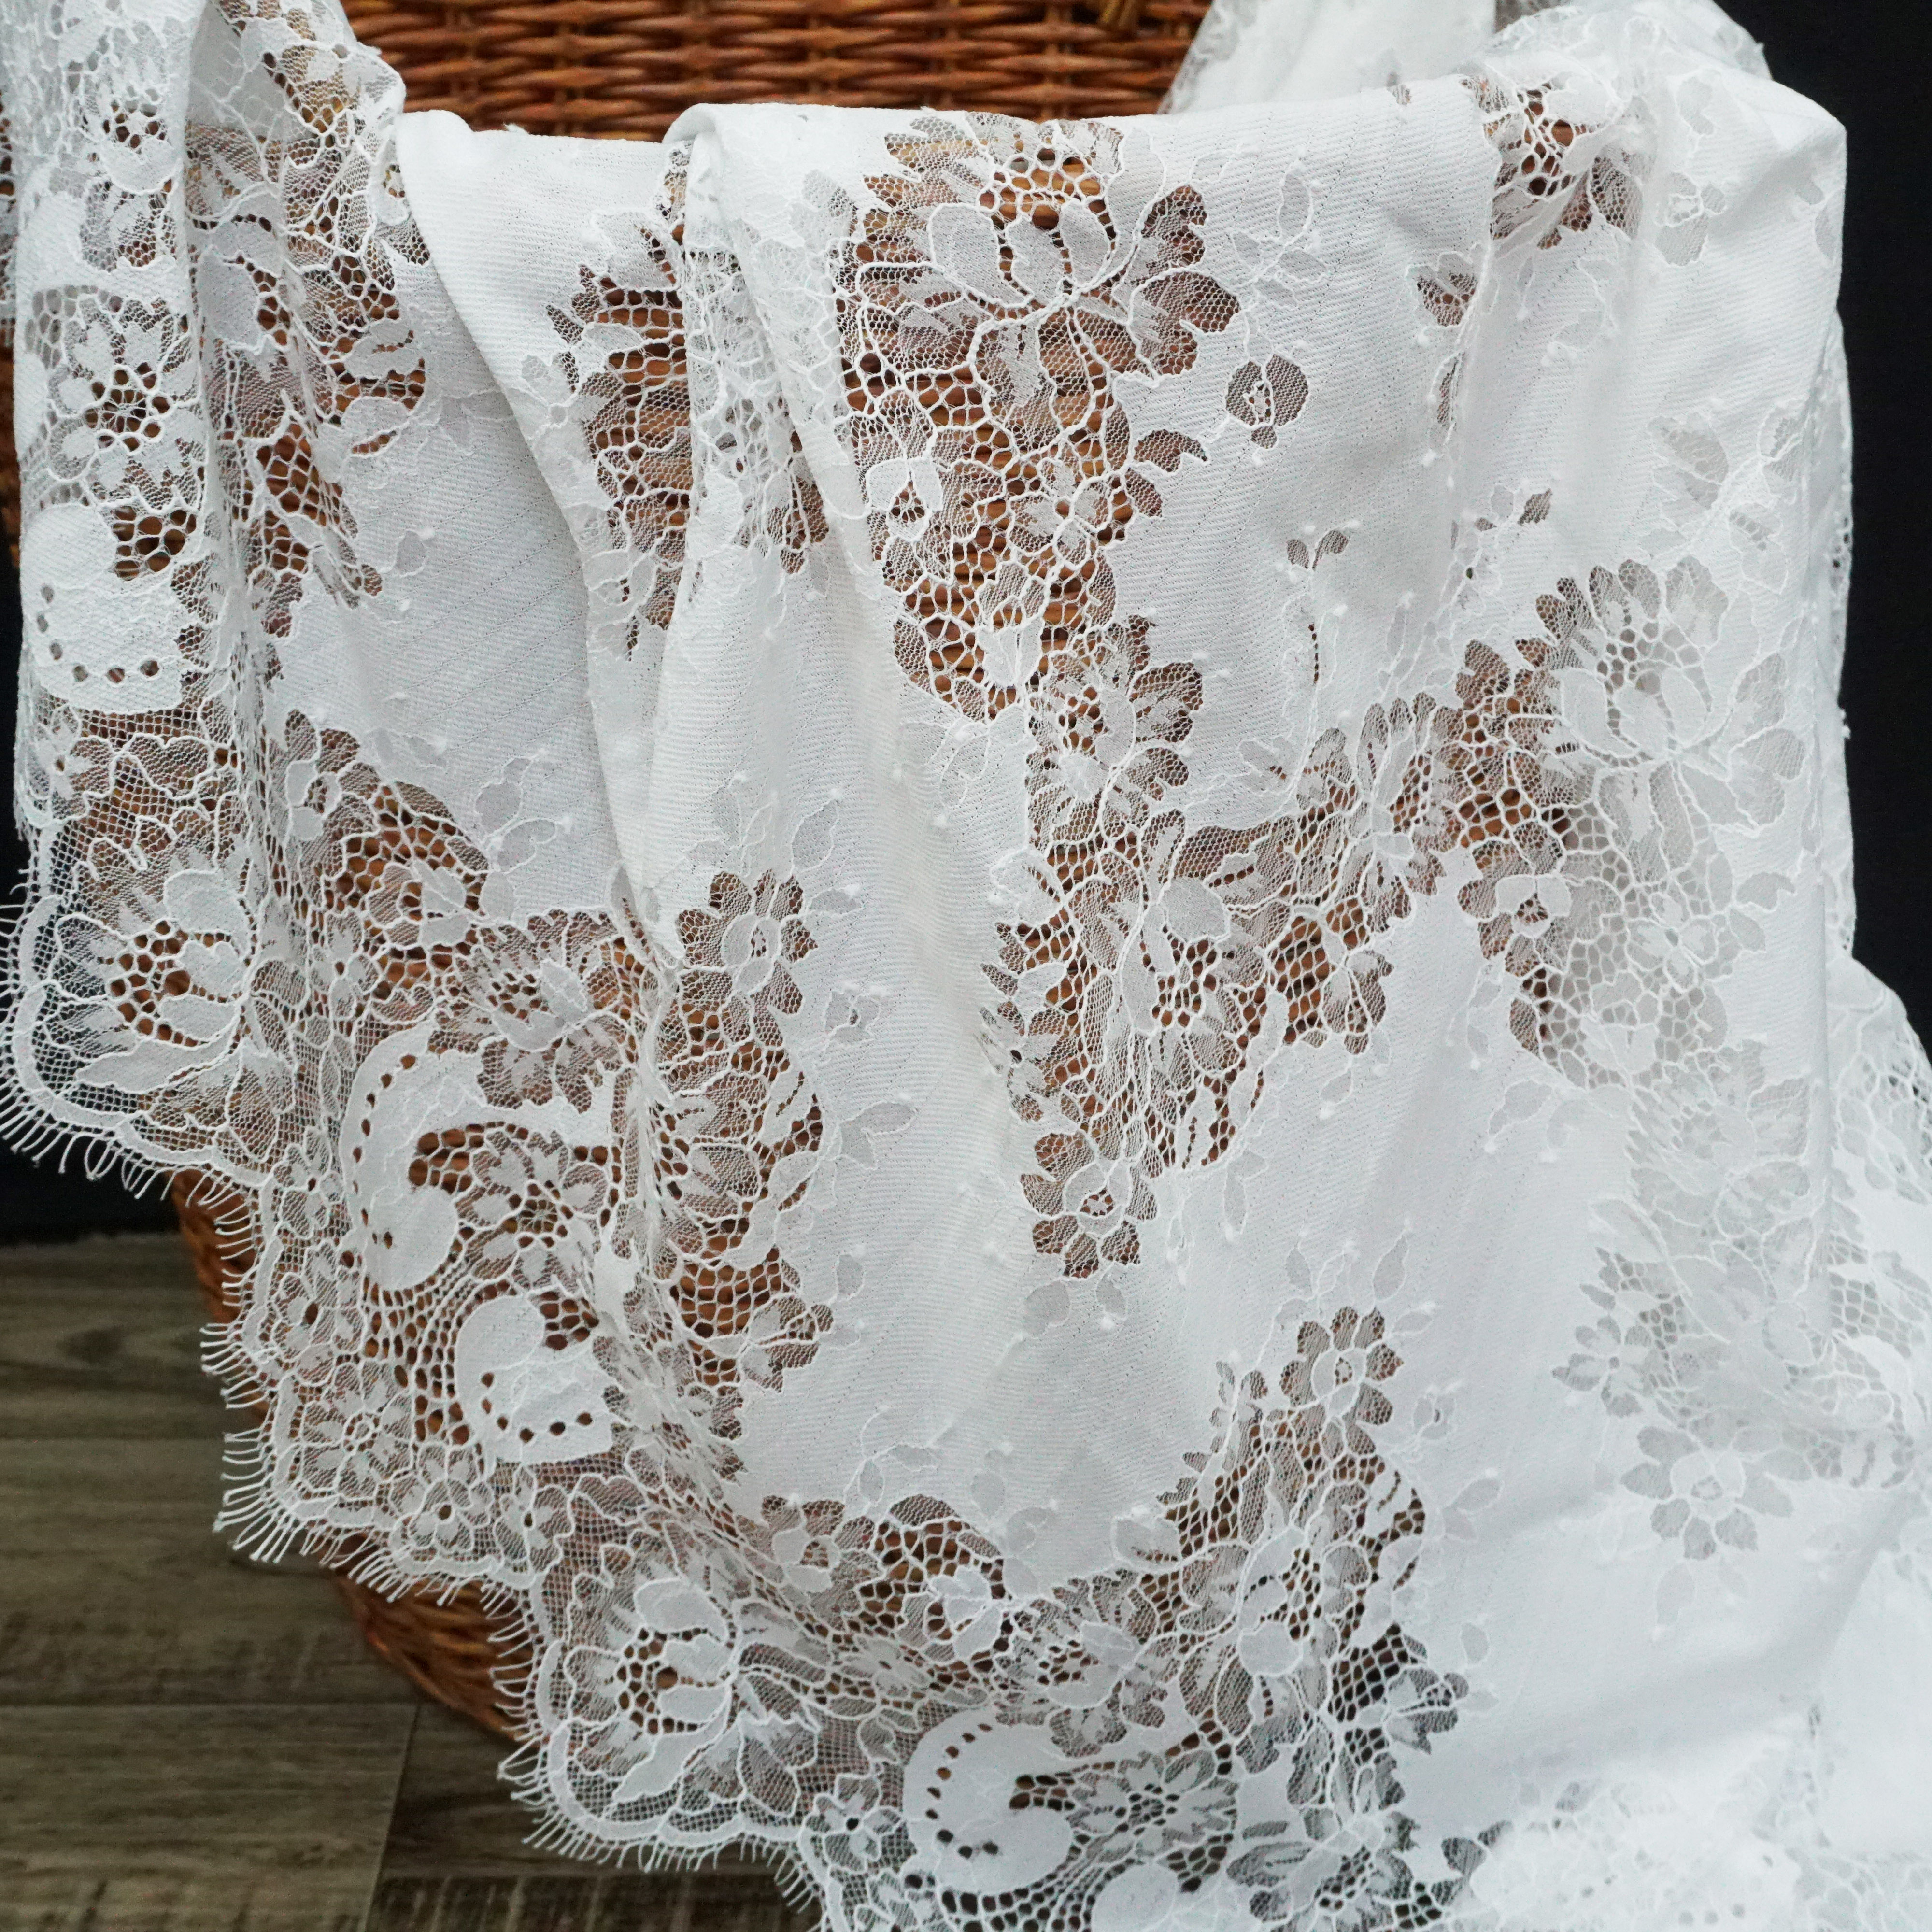 Soft top quality women long dress making lace fabric 1 piece 3 meters long! Lucy boutique eyelash french in stock